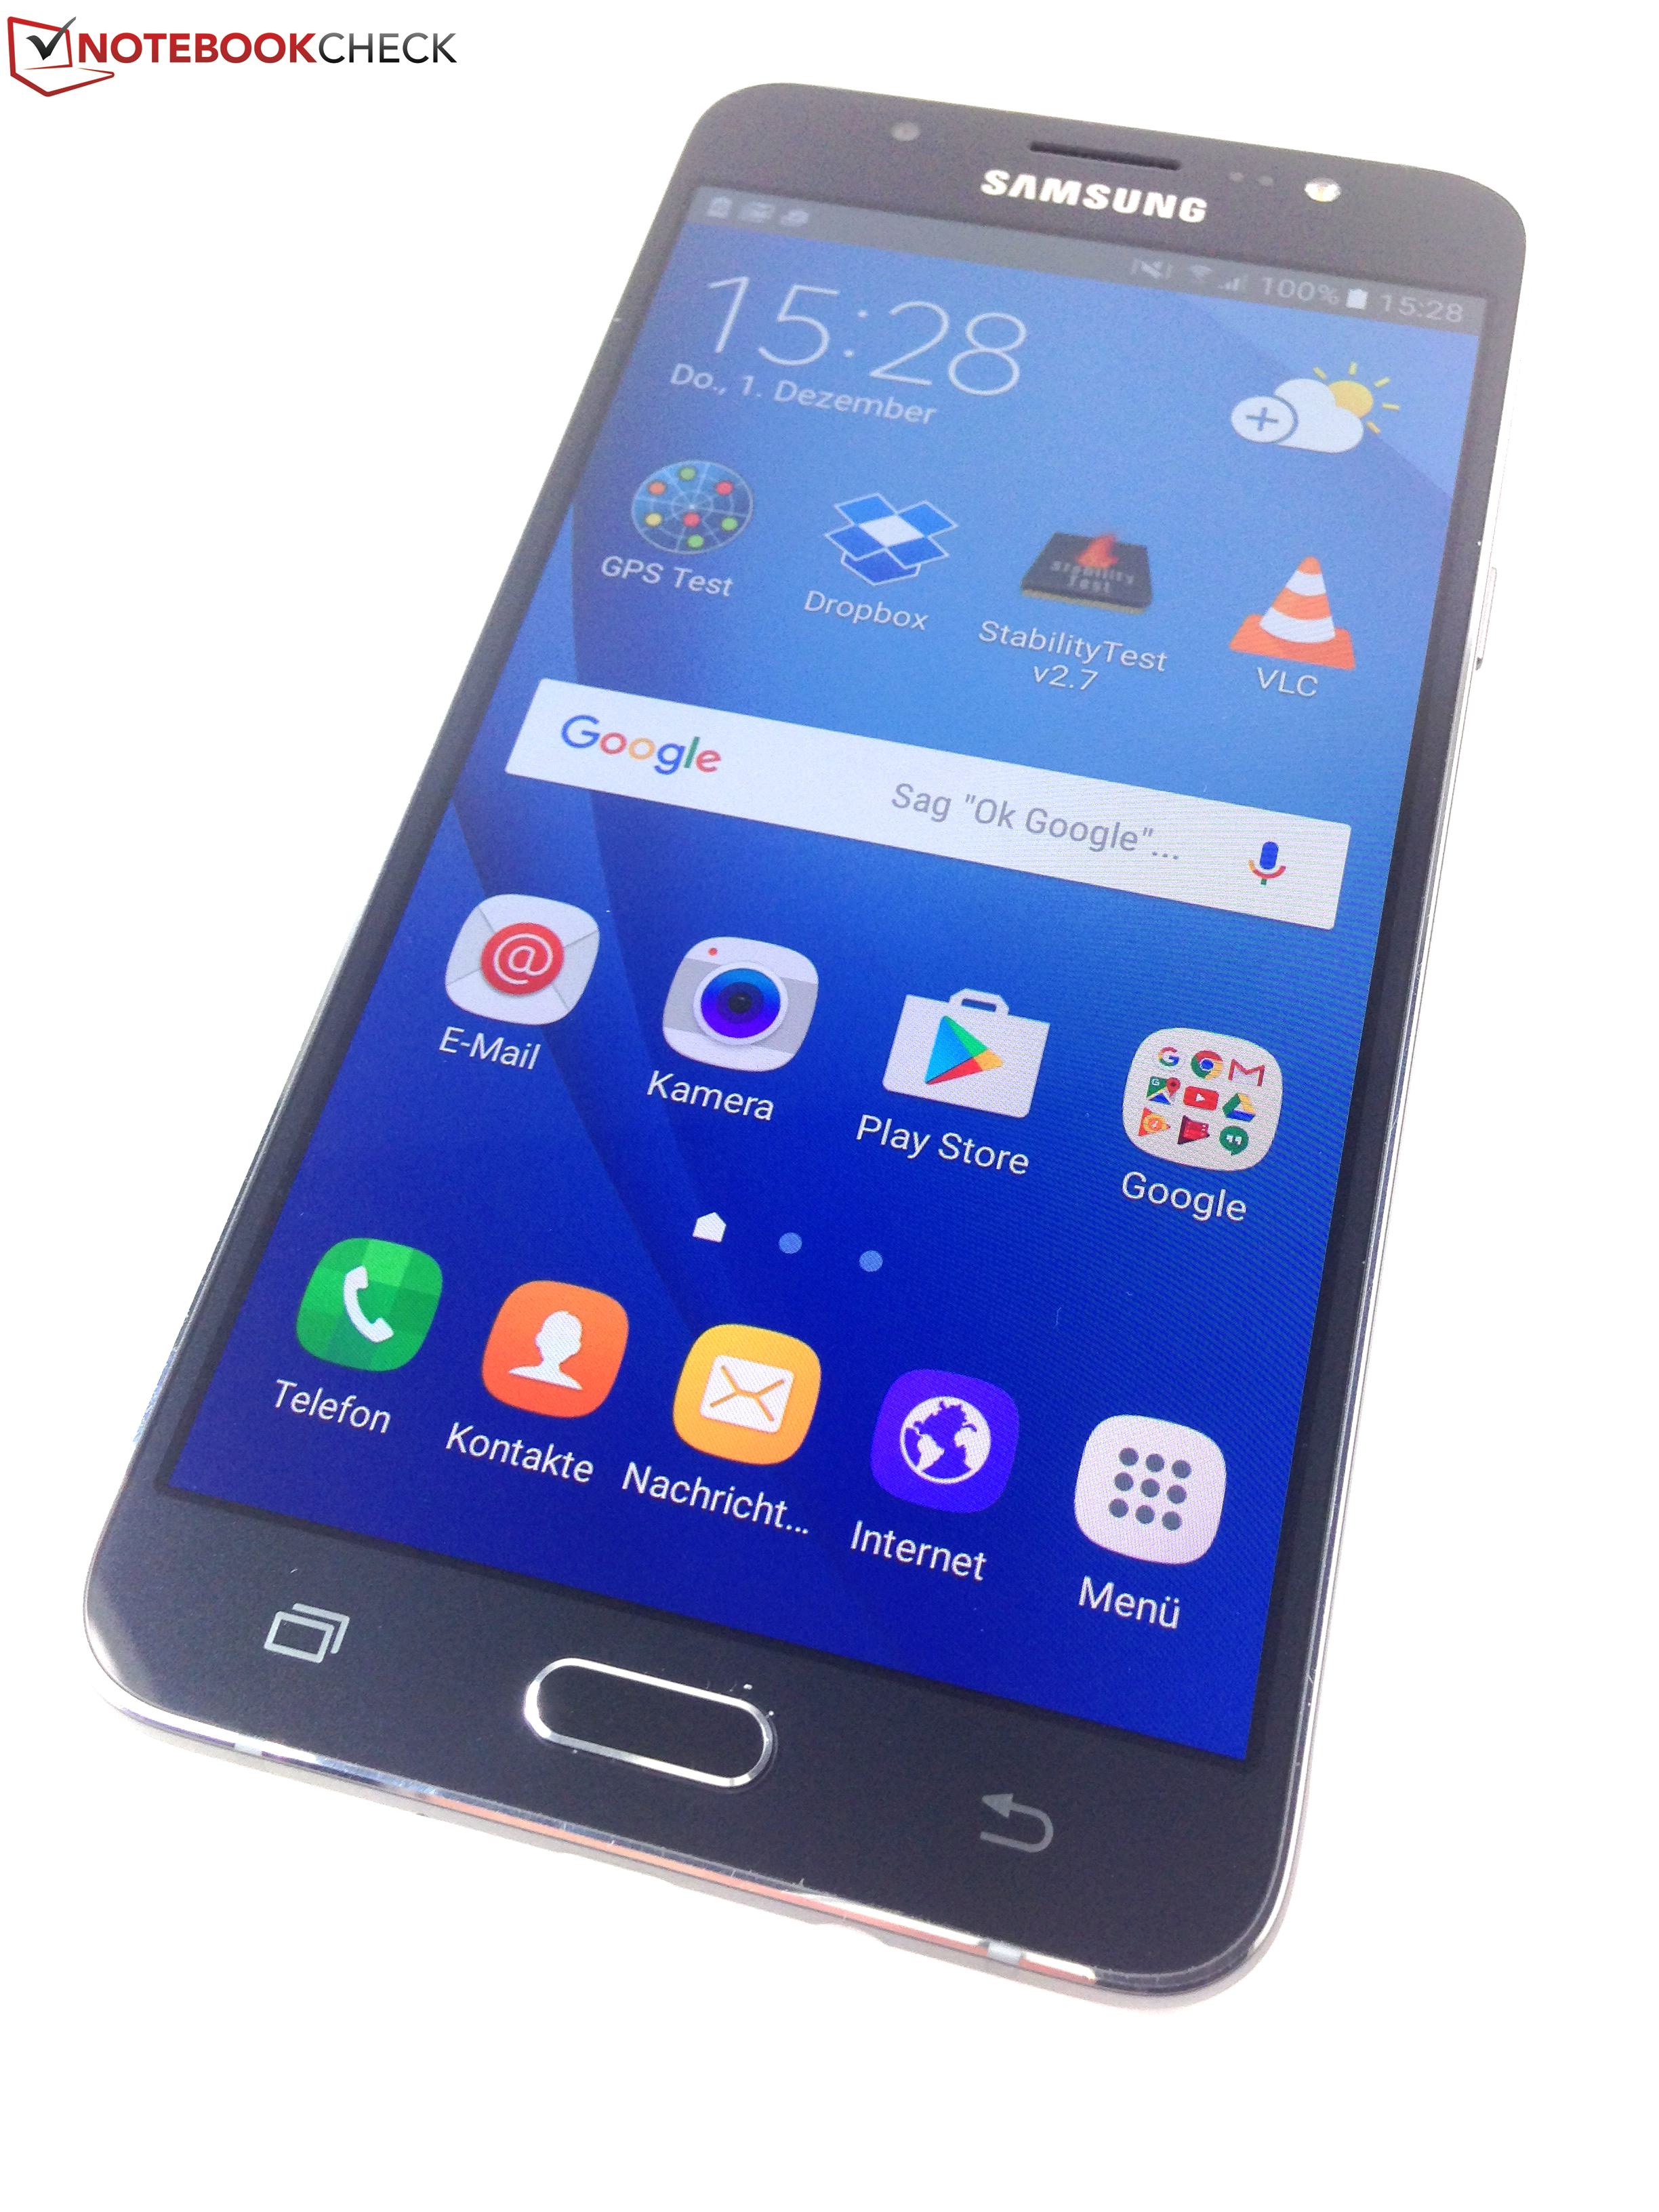 samsung galaxy j7 2016 smartphone review notebookcheck. Black Bedroom Furniture Sets. Home Design Ideas